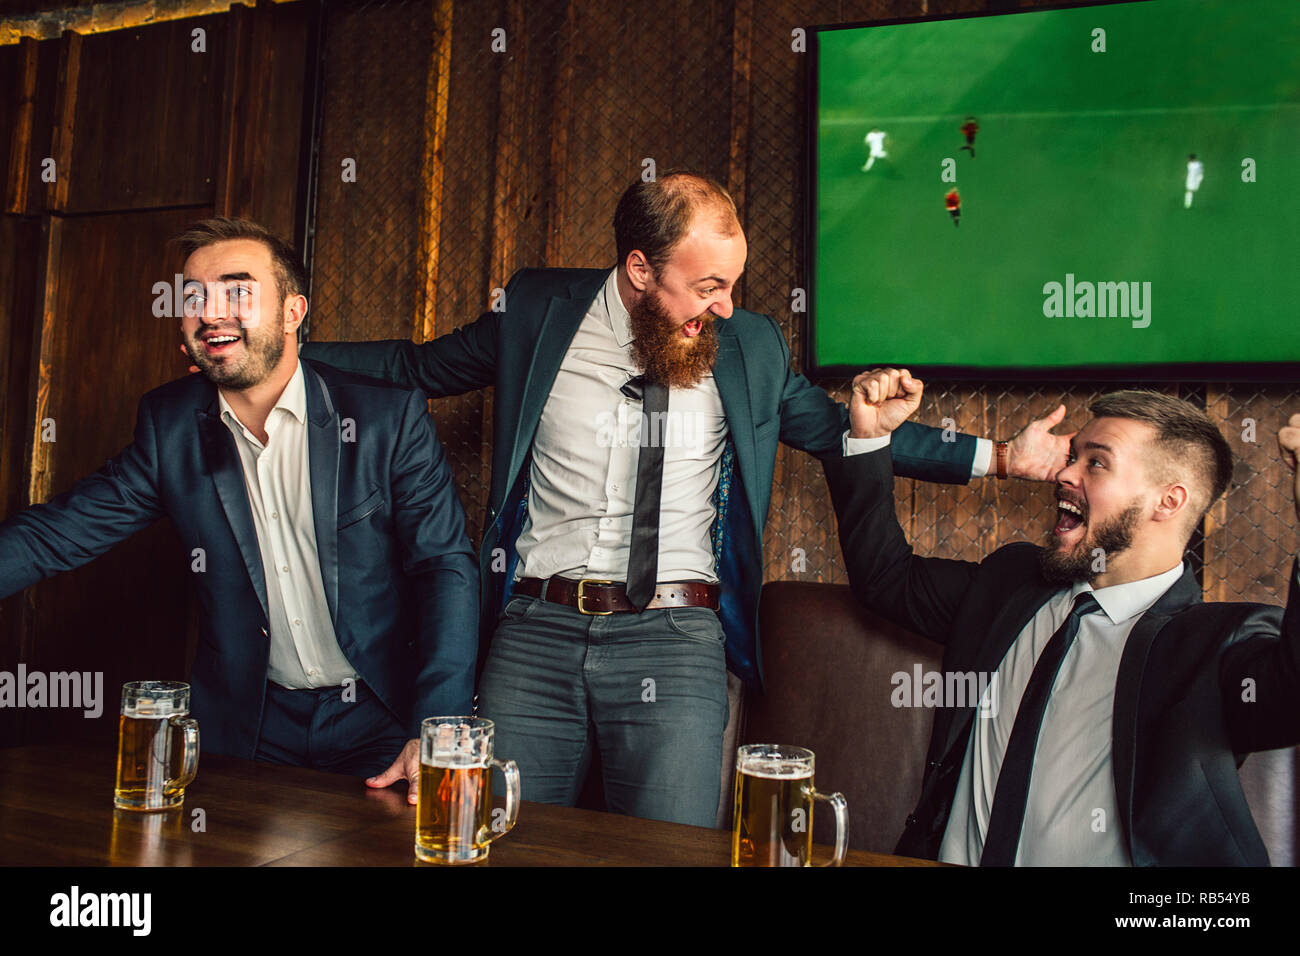 Excited young man cheer in pub. They look at each other and wave with hands. Guys watch football game. - Stock Image